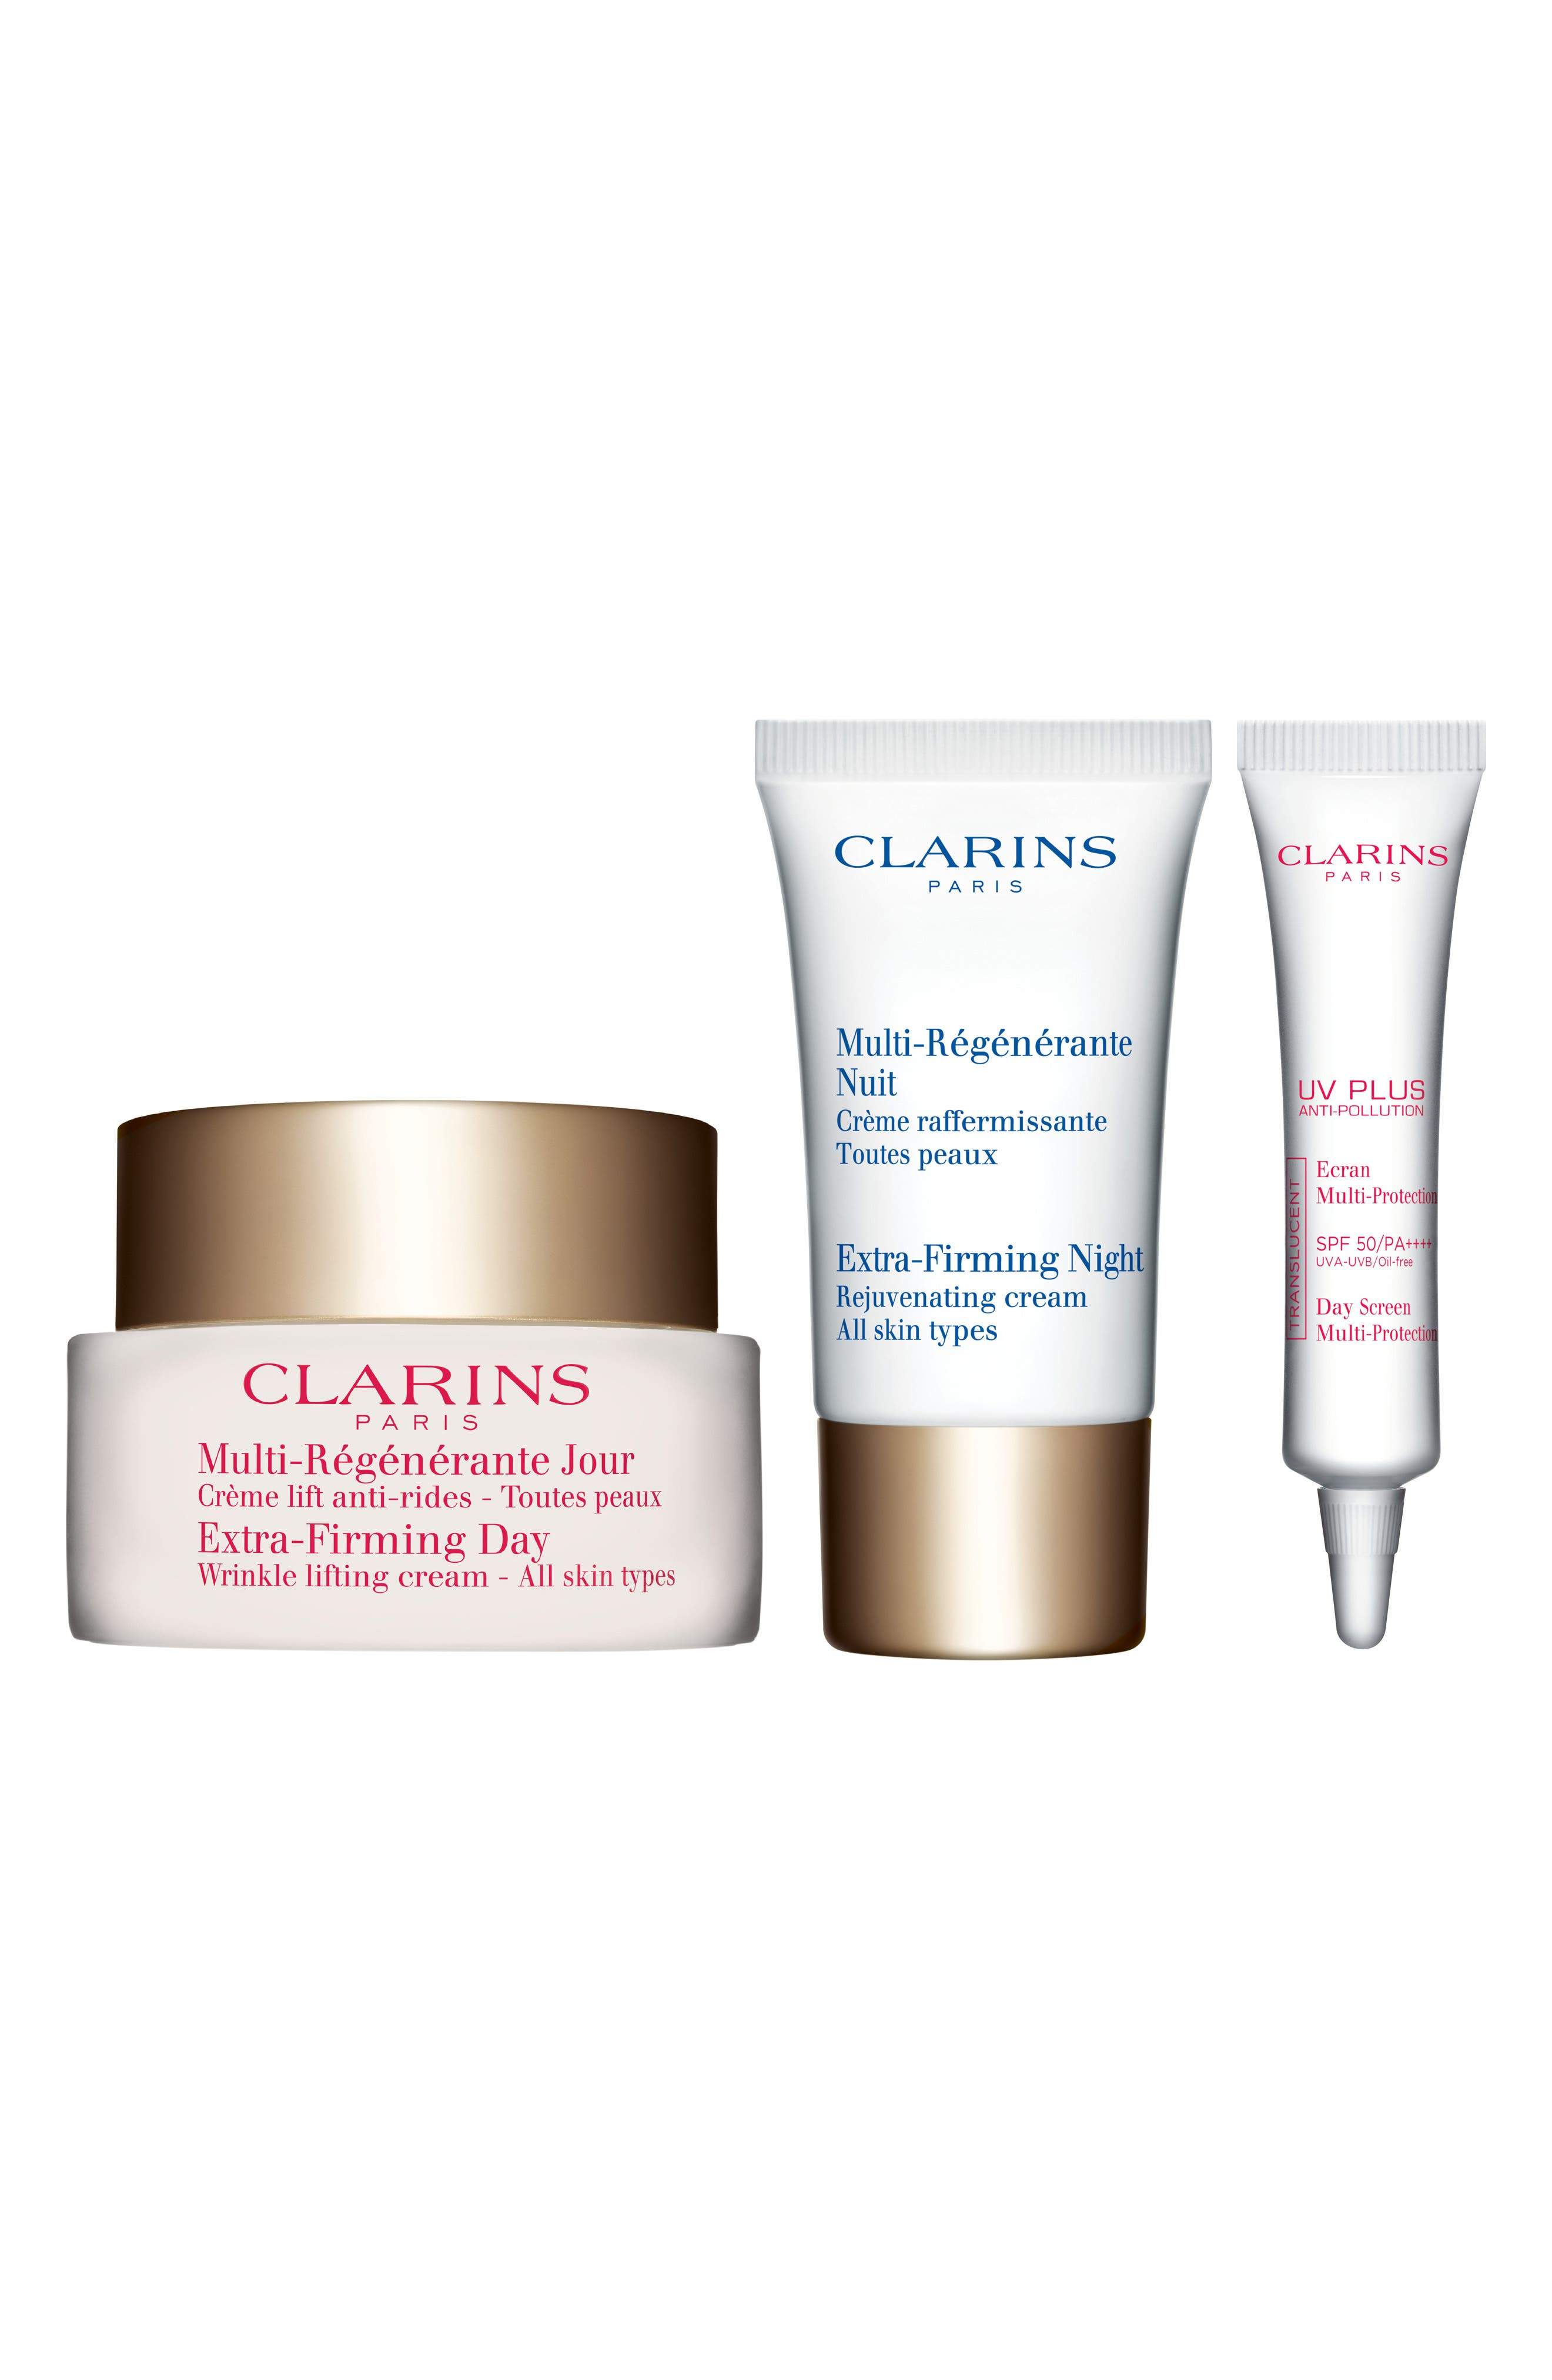 Alternate Image 1 Selected - Clarins Extra-Firming Trio (Over $121 Value)